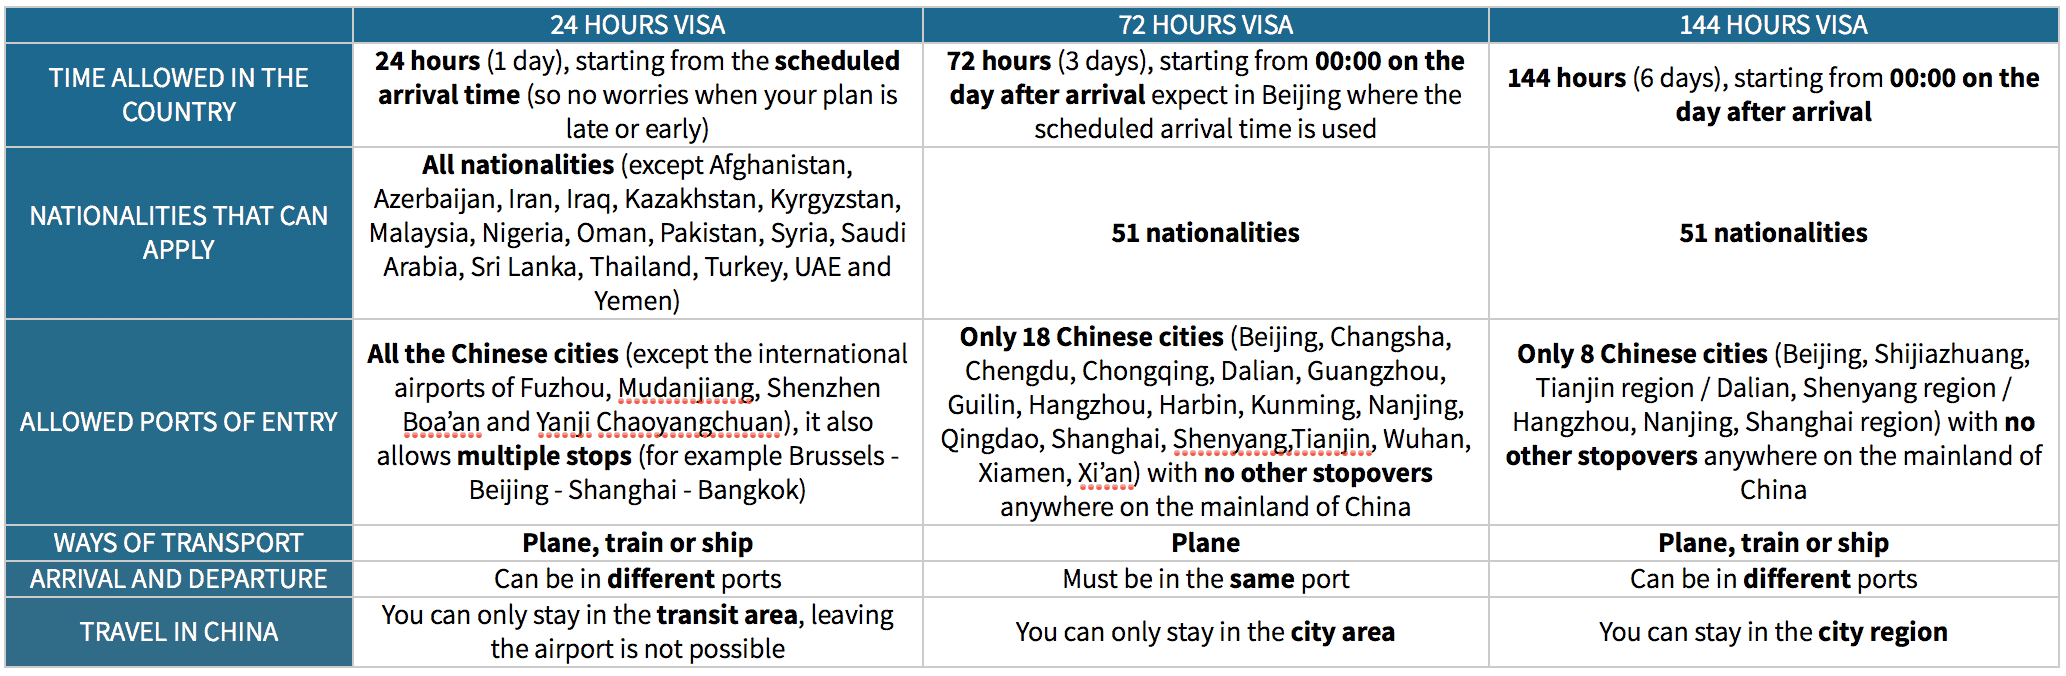 Chinese Transit Visa China 24 72 144 hours